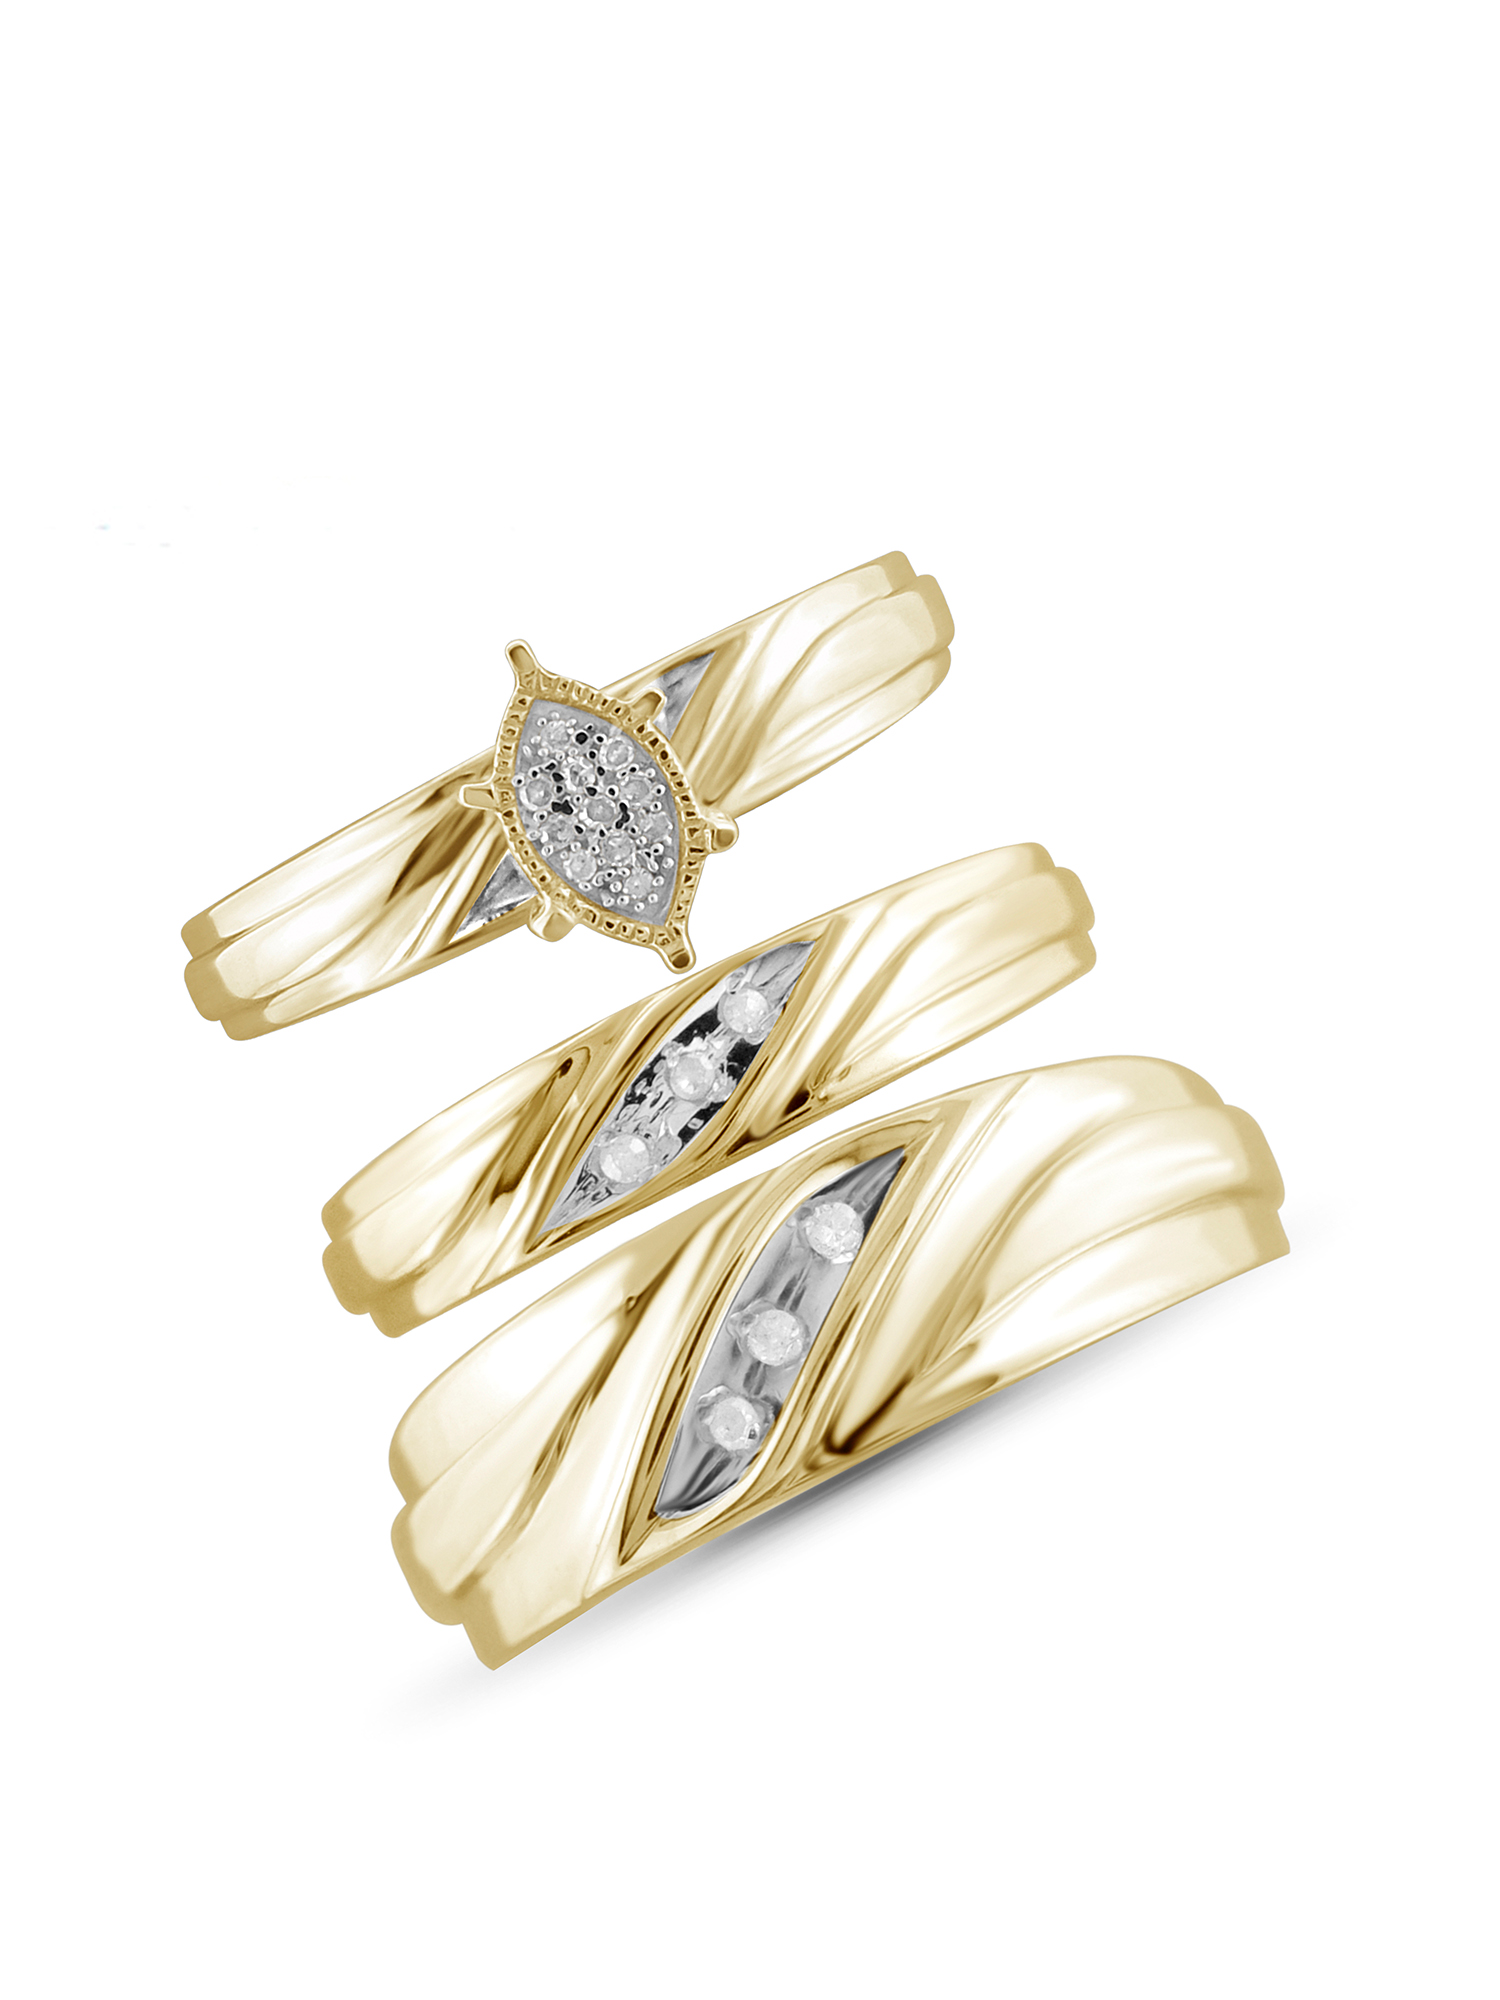 1/10 Carat T.W. White Diamond Gold Over Silver Trio Engagement Ring Set